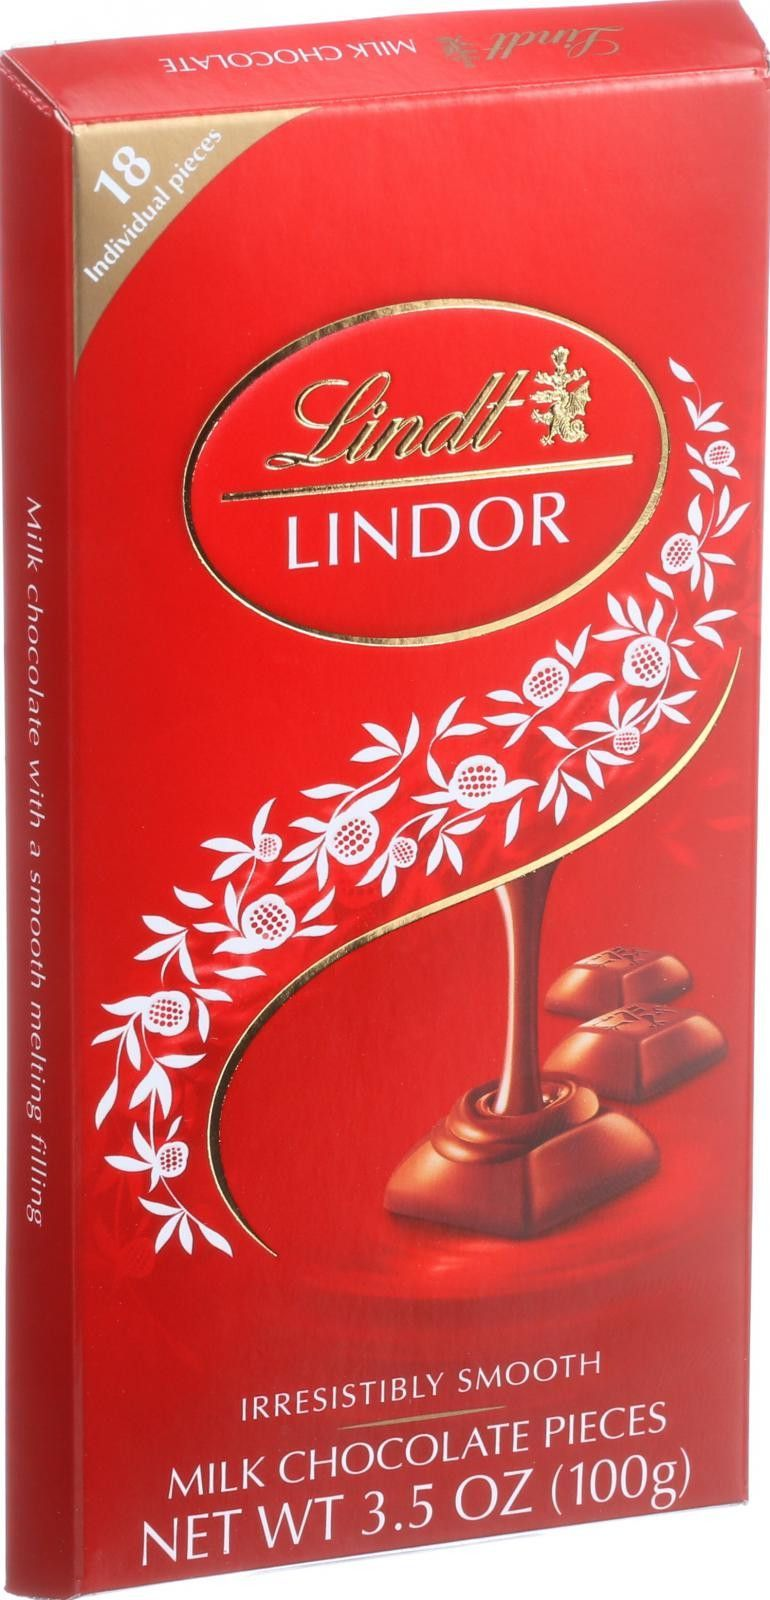 Lindt Chocolate Pieces - Truffles - Milk Chocolate - 3.5 oz - Case of 12